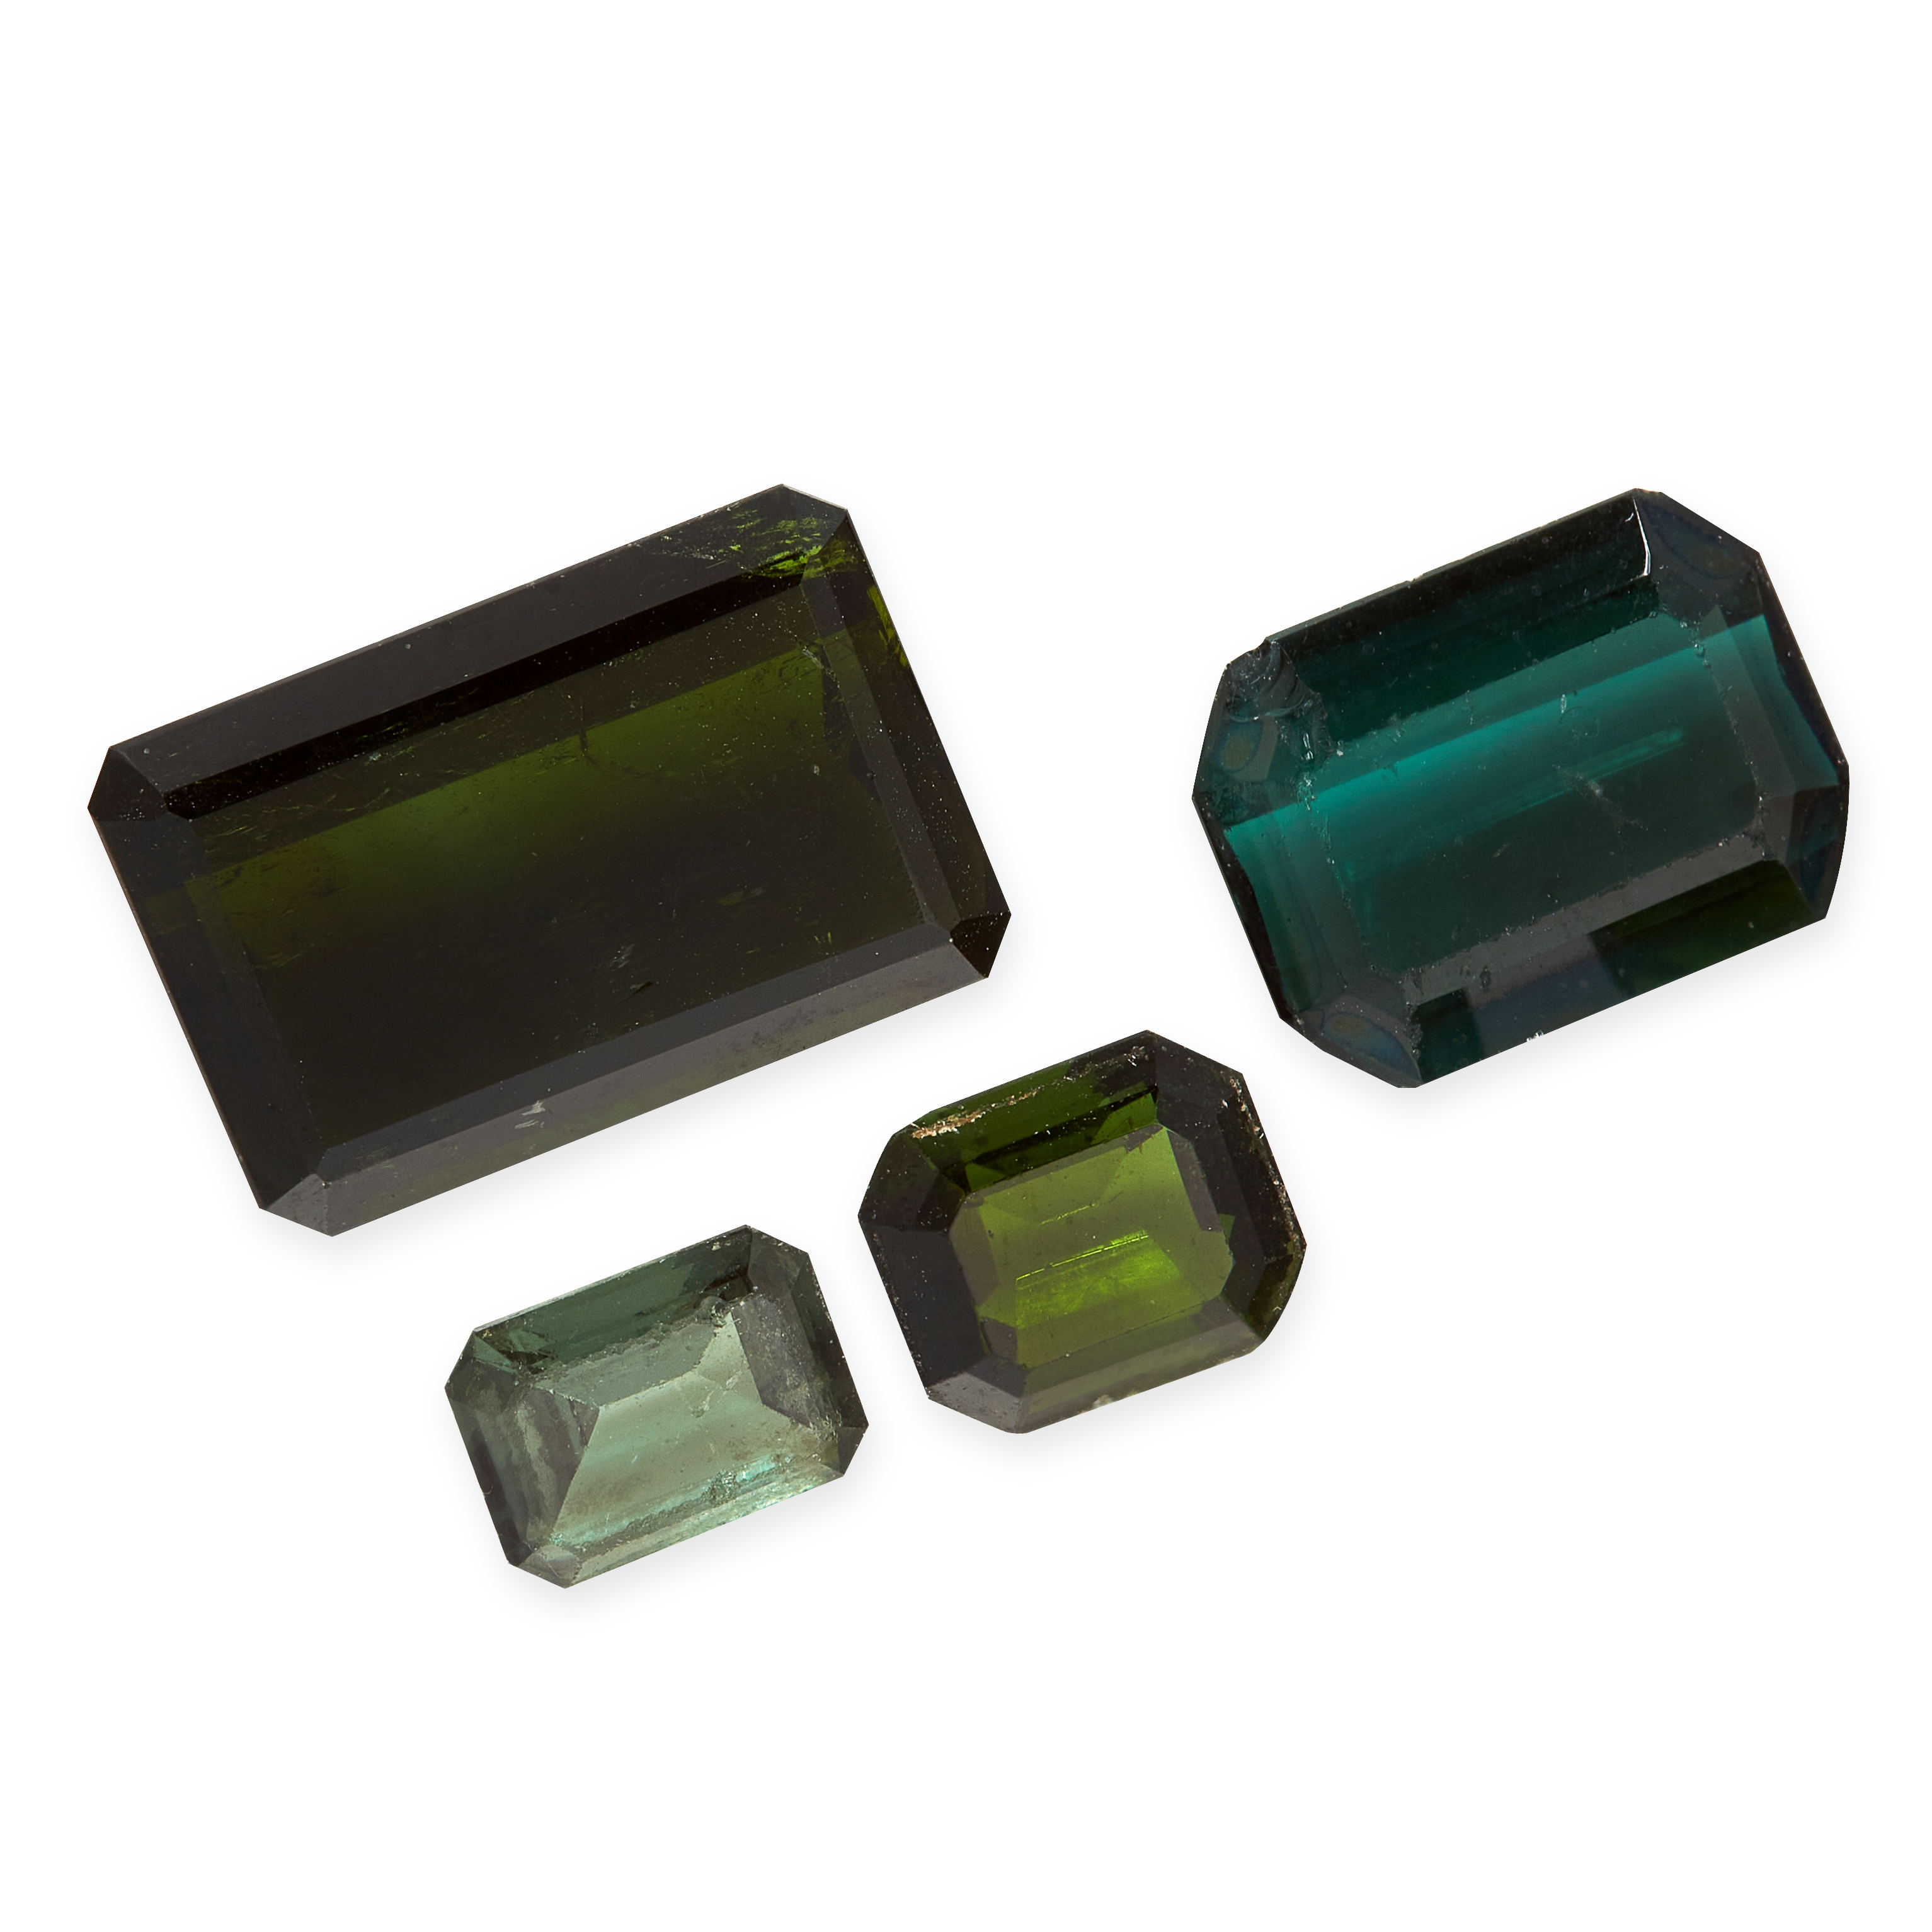 A MIXED LOT OF UNMOUNTED GREEN TOURMALINE emerald cut, various sizes, totalling 20.44 carats.